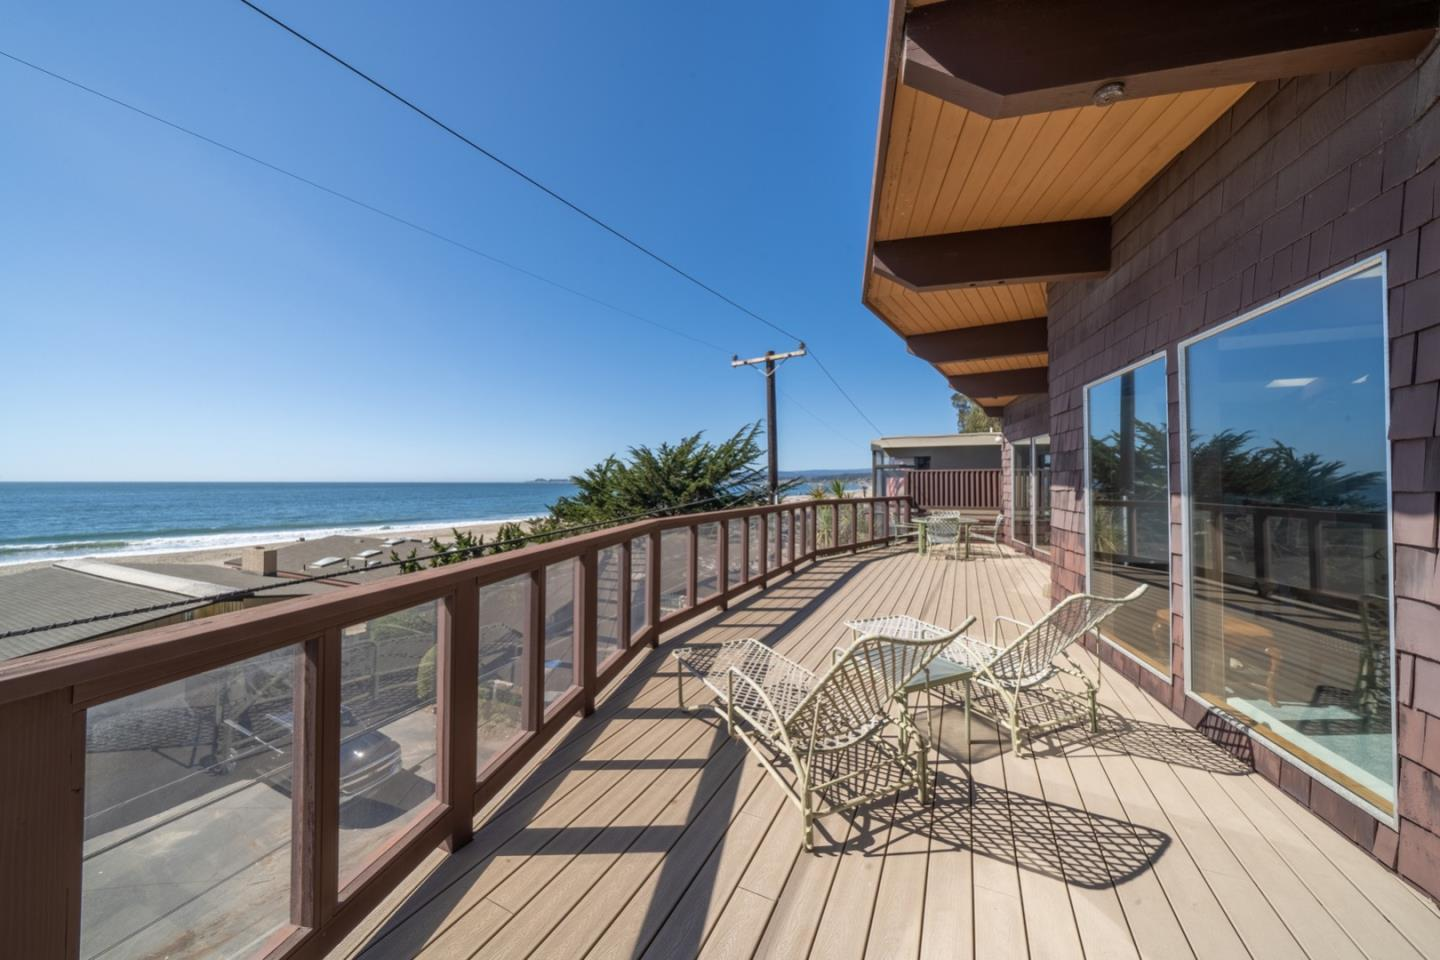 Mid century style with white water views, imagine the possibilities! Located behind the gates on Rio del Mar's Beach Drive, where the sand and surf are steps from your front door. Designed to maximize the sights and sounds of the seashore, featuring two oversized living spaces, both with ocean blue views as far as the eye can see. Reverse floor plan features four bedrooms, separate family room, exposed beam ceilings, abundant natural light and open concept great room with kitchen, living and dining rooms all perfectly intertwined to create an entertainers delight.Enjoy viewing spectacular sunsets, migrating whales and soaring pelicans from both inside and out on the two large decks off the great room and family room. 3 car garage provides a place for all the beach toys and more. It's a lifestyle you have been dreaming of, a home away from home, with that one incredible piece that is at the top of your wish list... the VIEW.Relax and SEA what time on the coast can do for you!